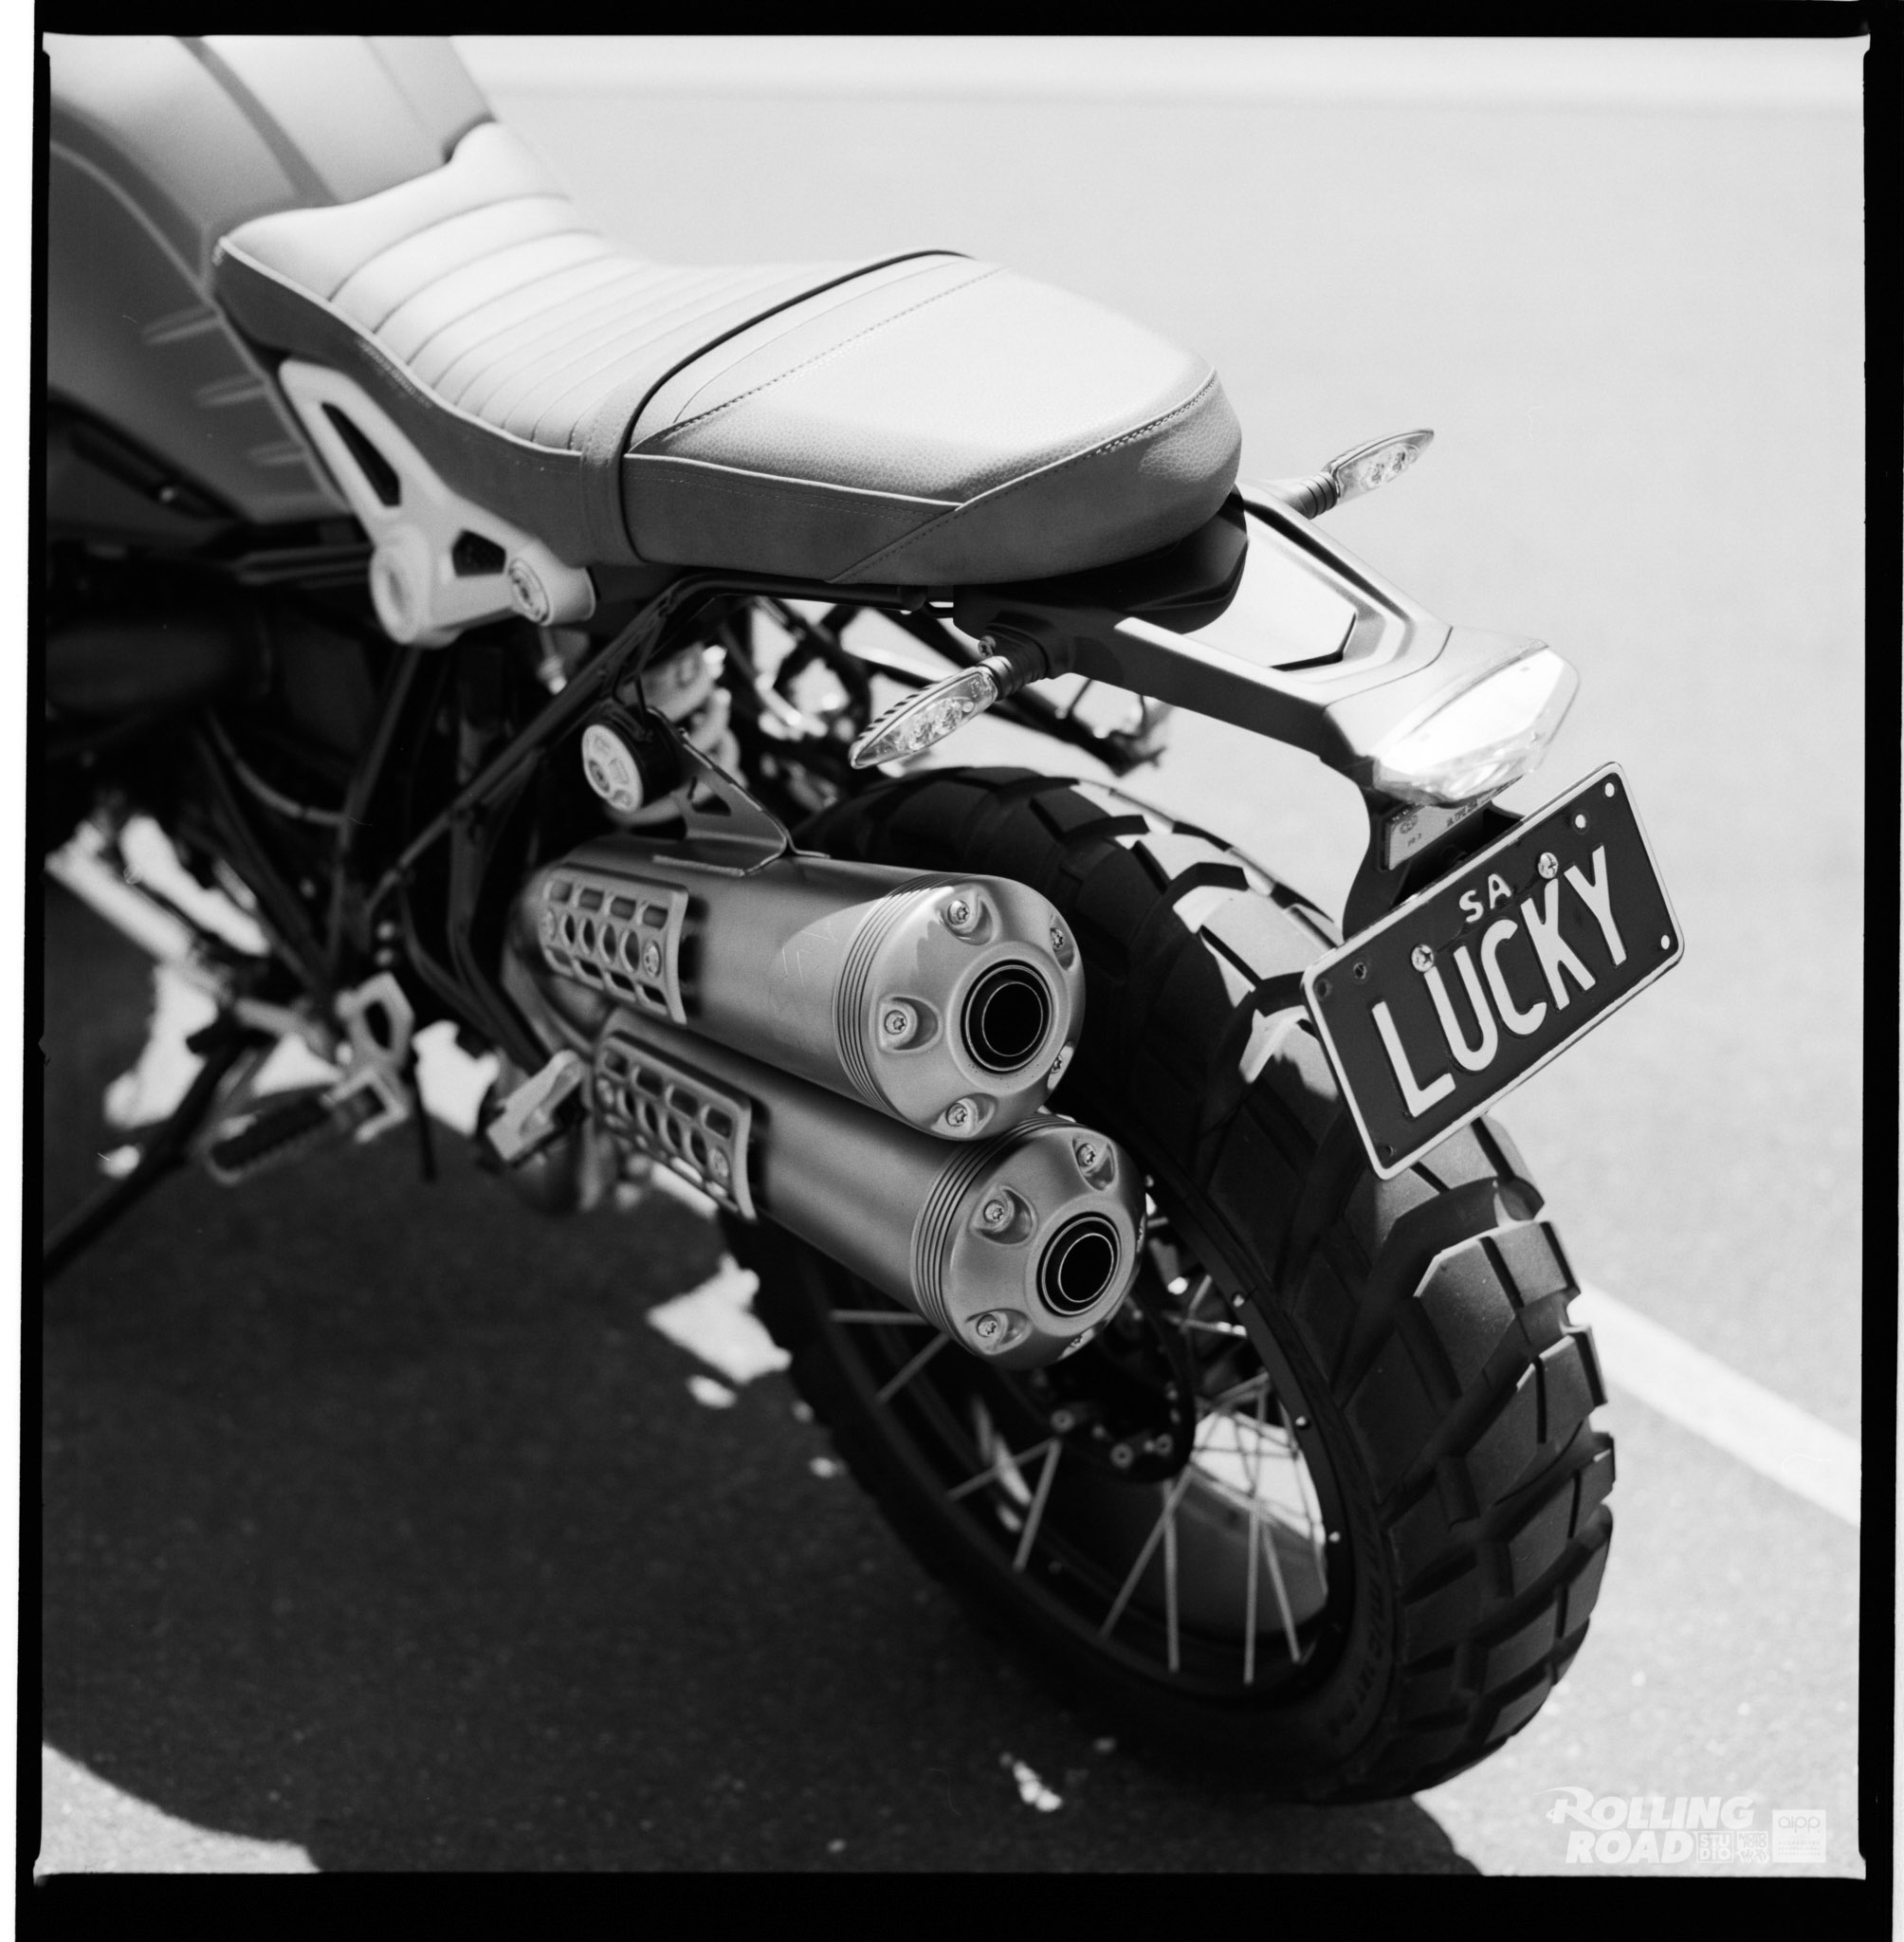 rolling-road-studio-daniel-purvis-photography-motorcycle-099.jpg